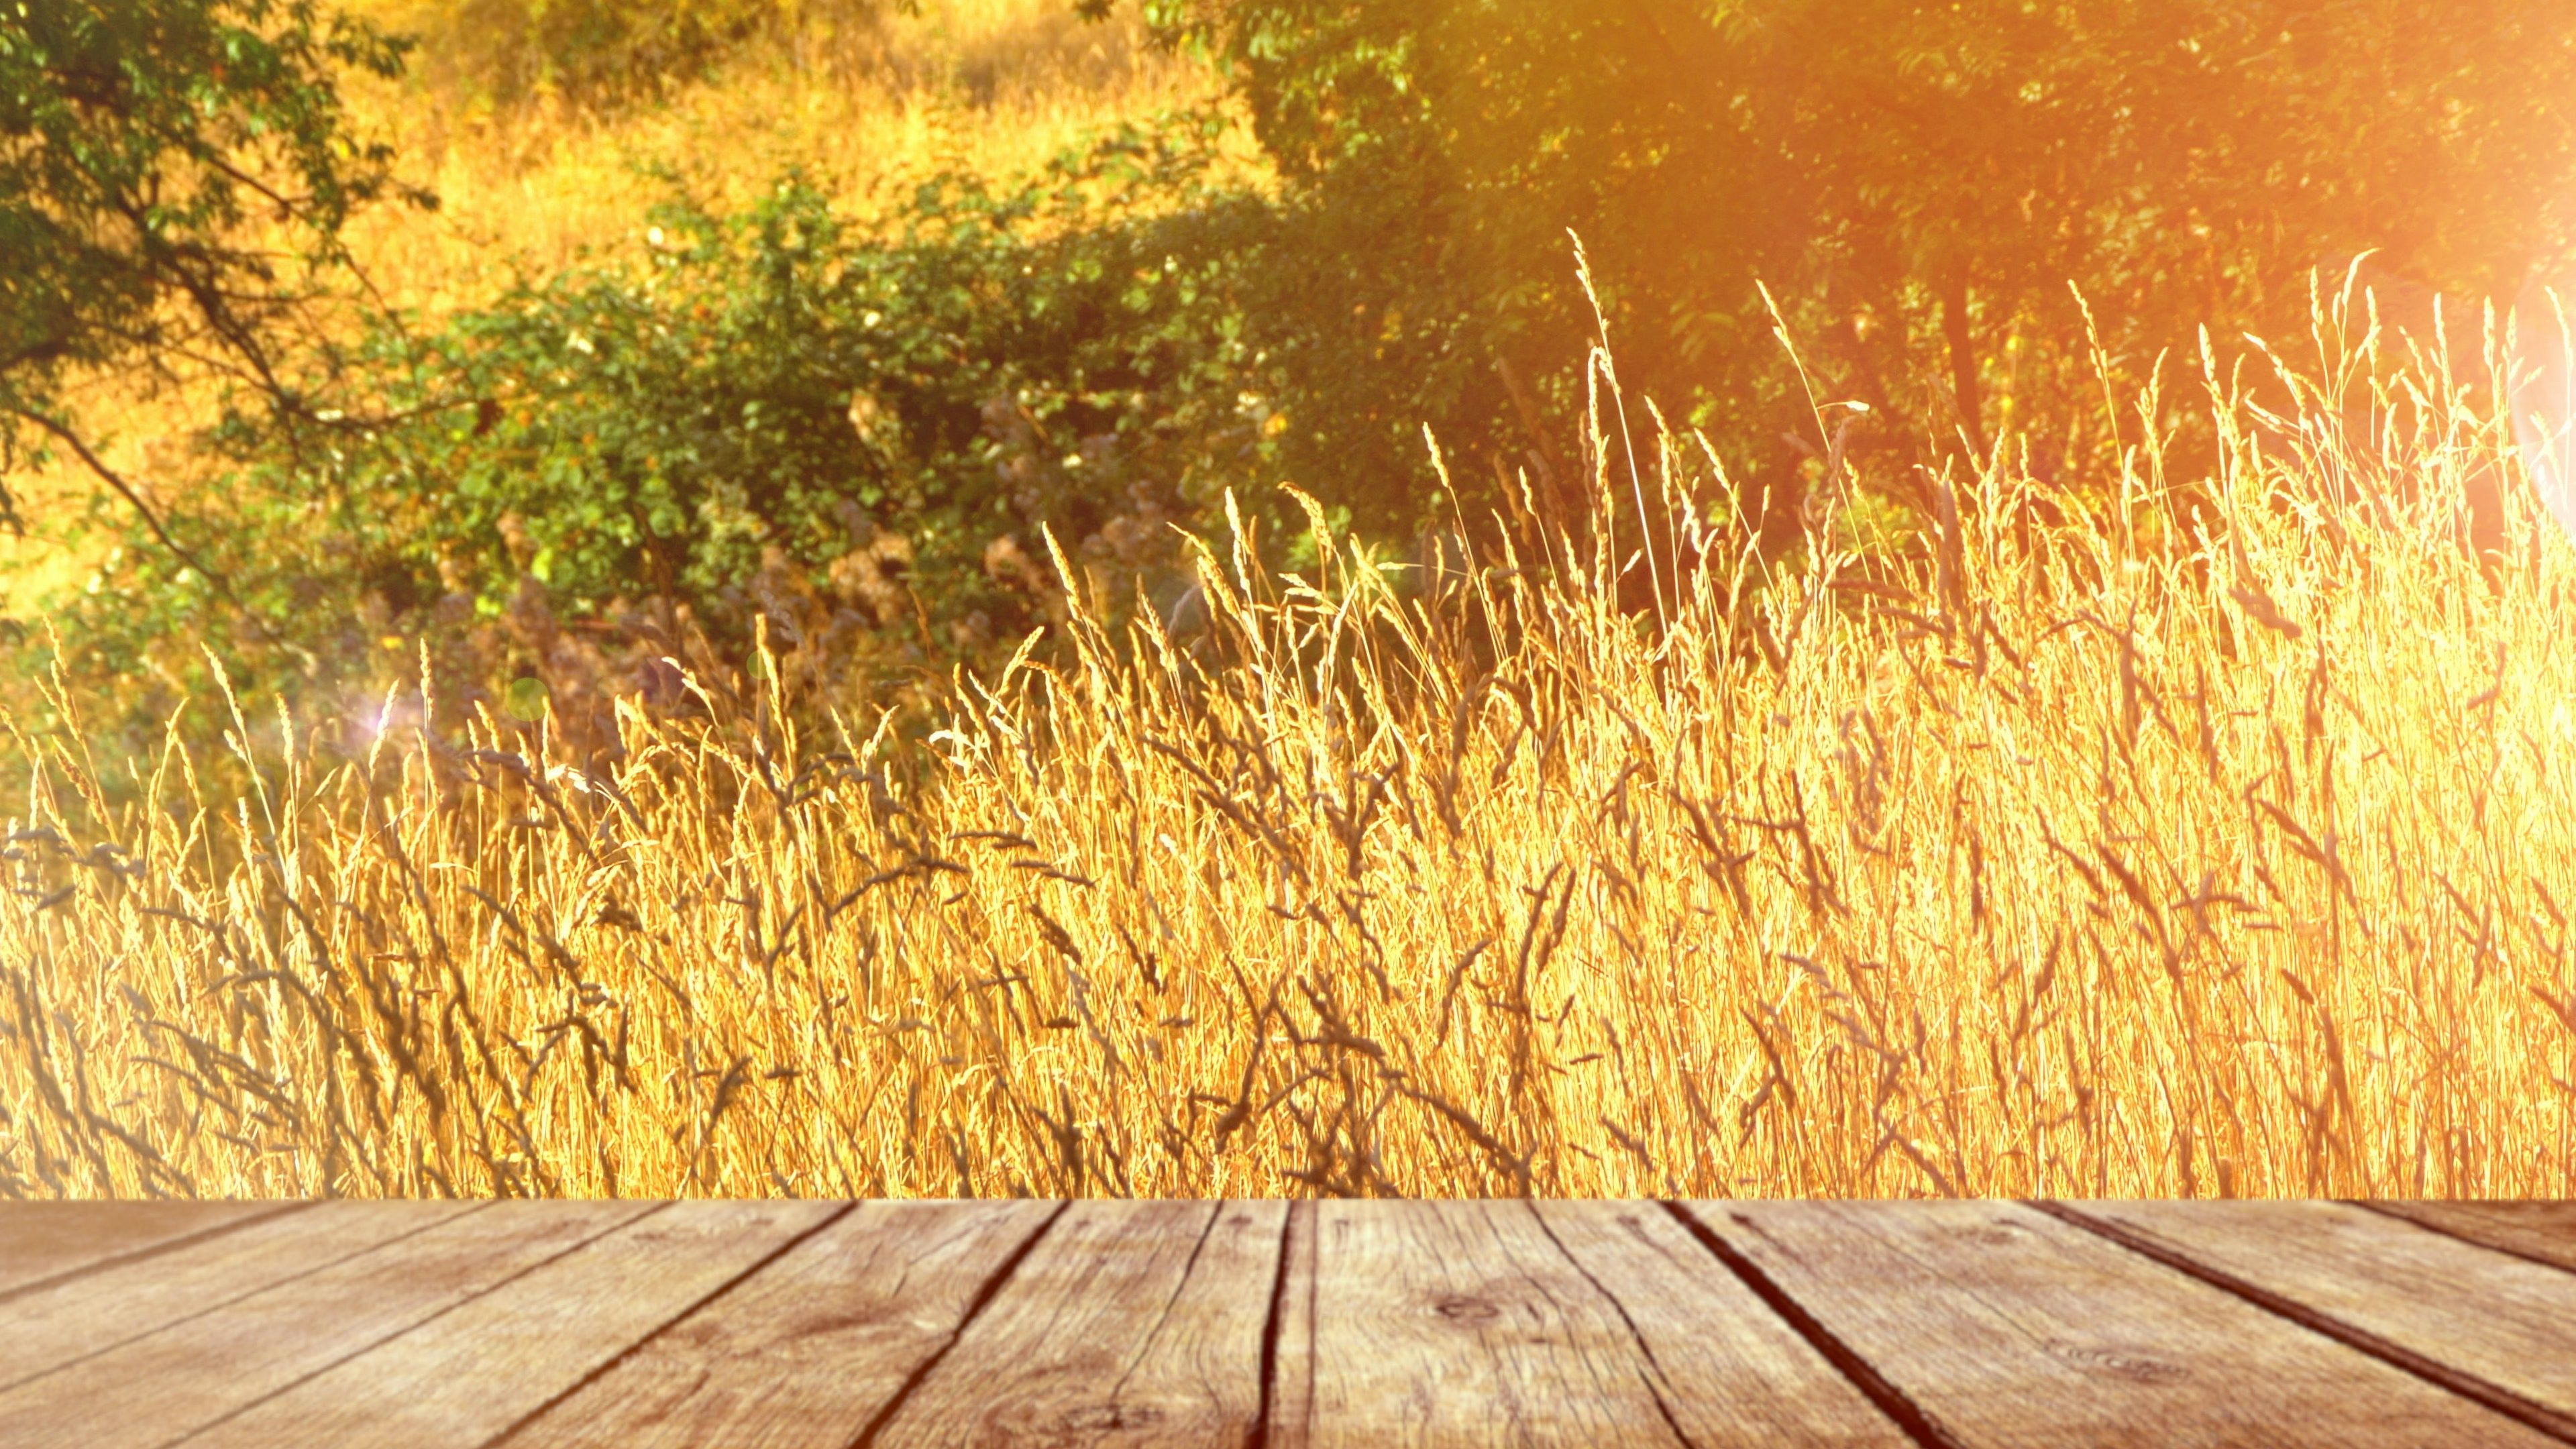 Yellow Field Grass Meadow Nature Field Background Park Landscape Stock Footage Ad Meadow Nature Grass Yellow Yellow Fields Park Landscape Wattpad Background